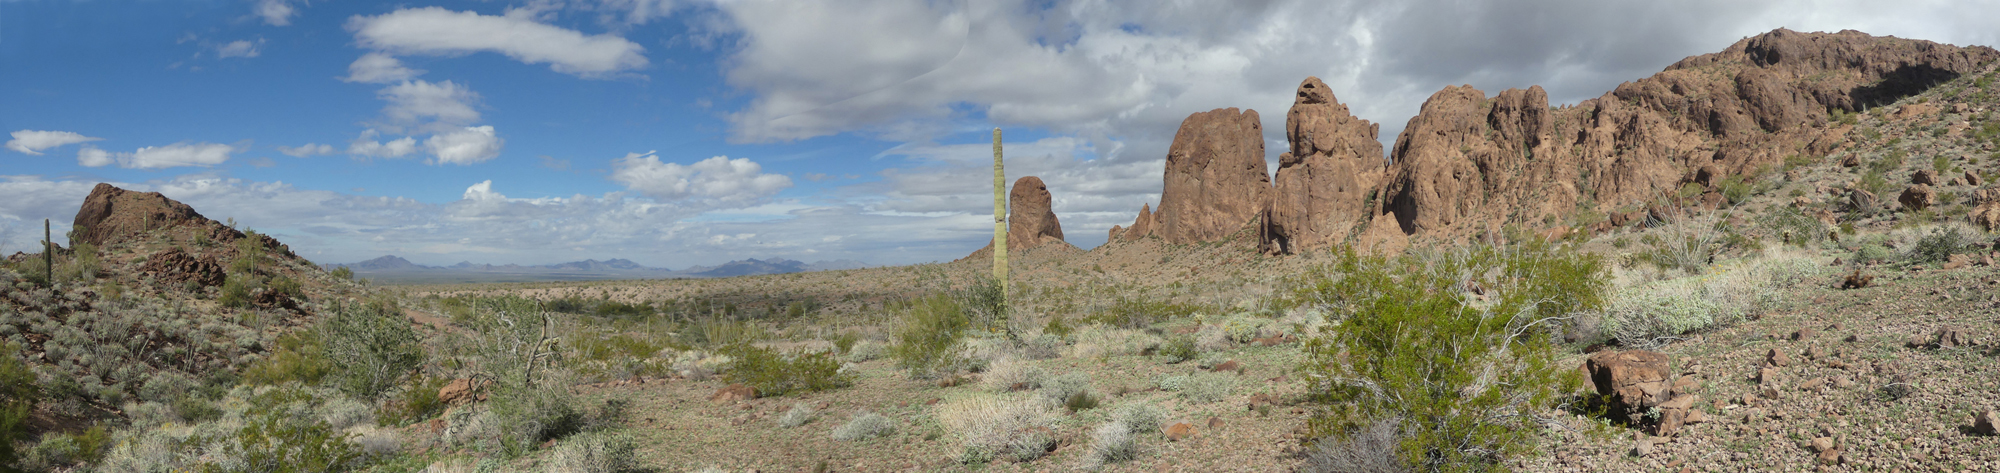 Kofa Queen Canyon Panorama